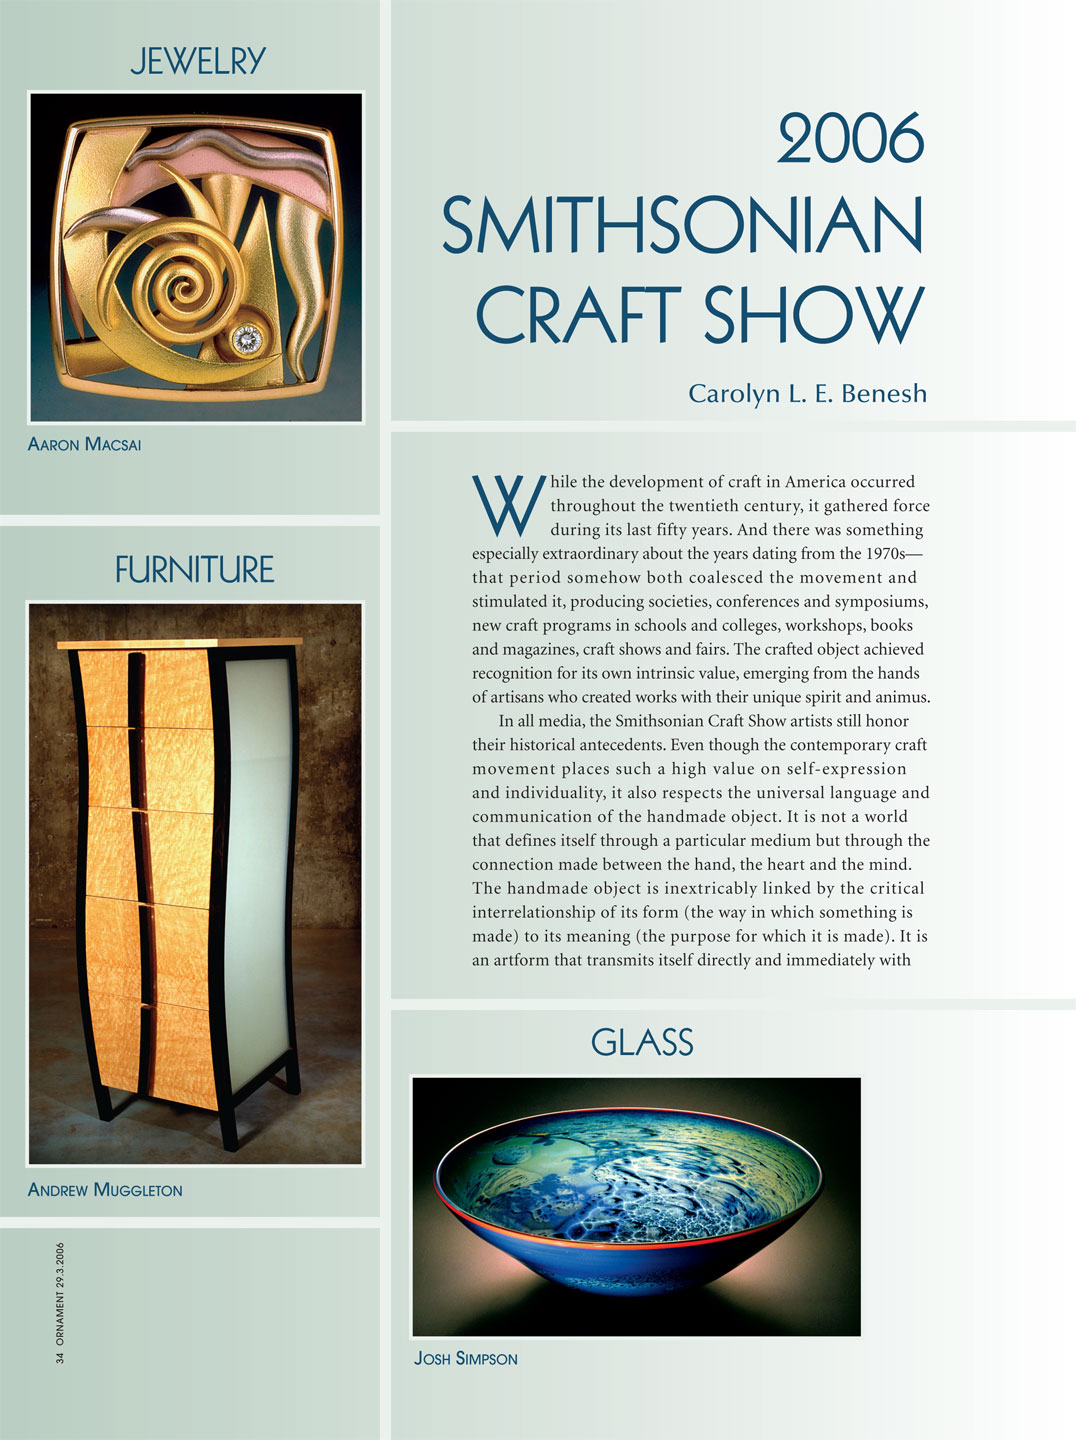 Orn29_3_Smithsonian_Craft_Show-Cover.jpg